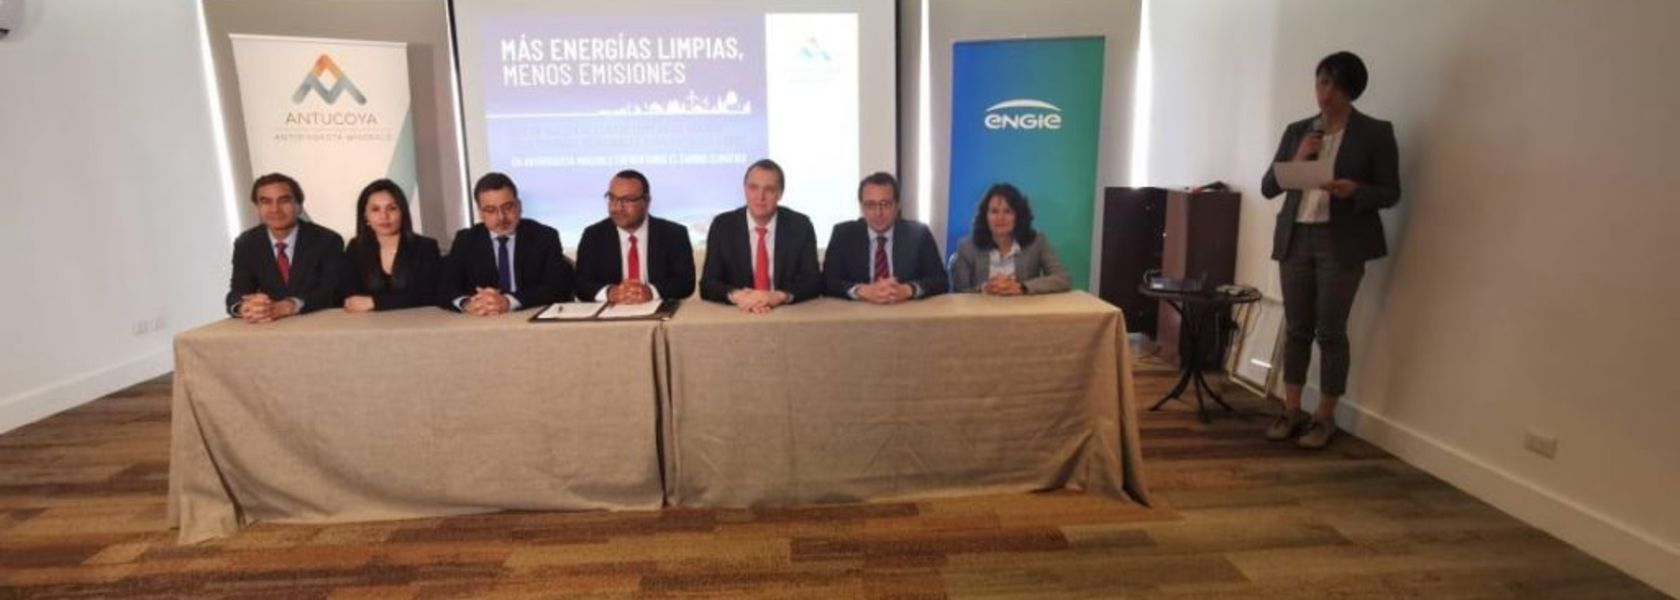 Minera Antucoya signs renewables deal with Chilean energy company